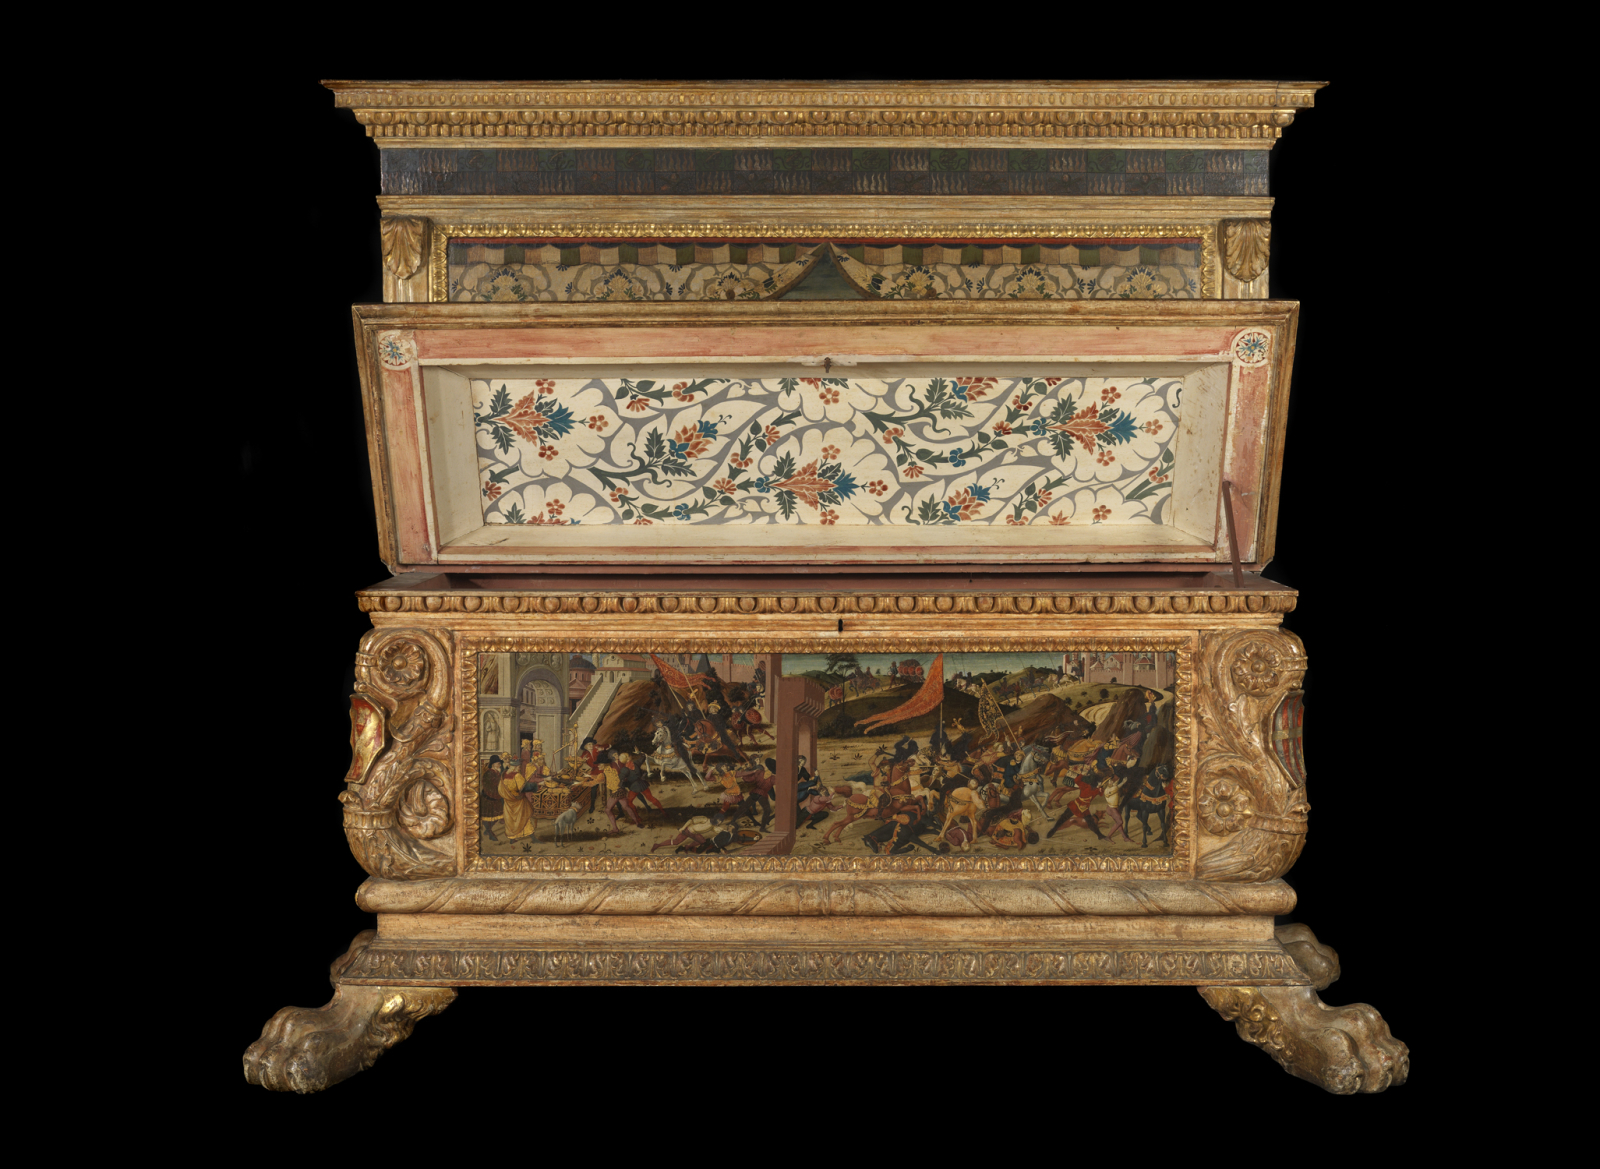 The Morelli-Nerli Wedding Chest,1472, Biagio di Antonio, Jacopo del Sellaio and Zanobi di Domenico